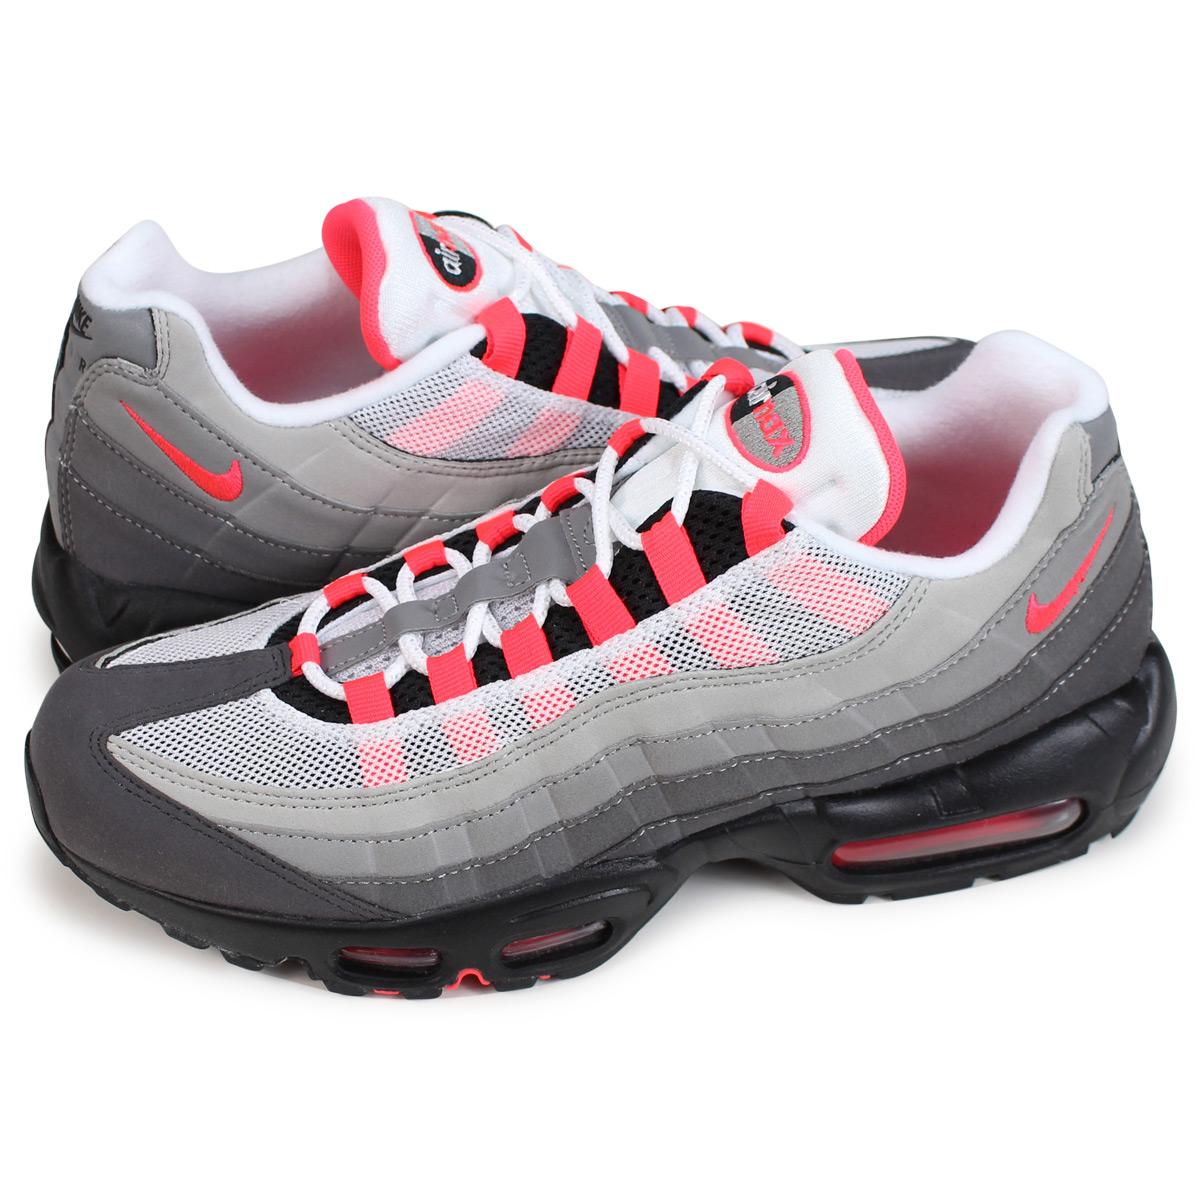 414f3d63047922 ALLSPORTS  Nike NIKE Air Max 95 sneakers men AIR MAX 95 OG solar red ...